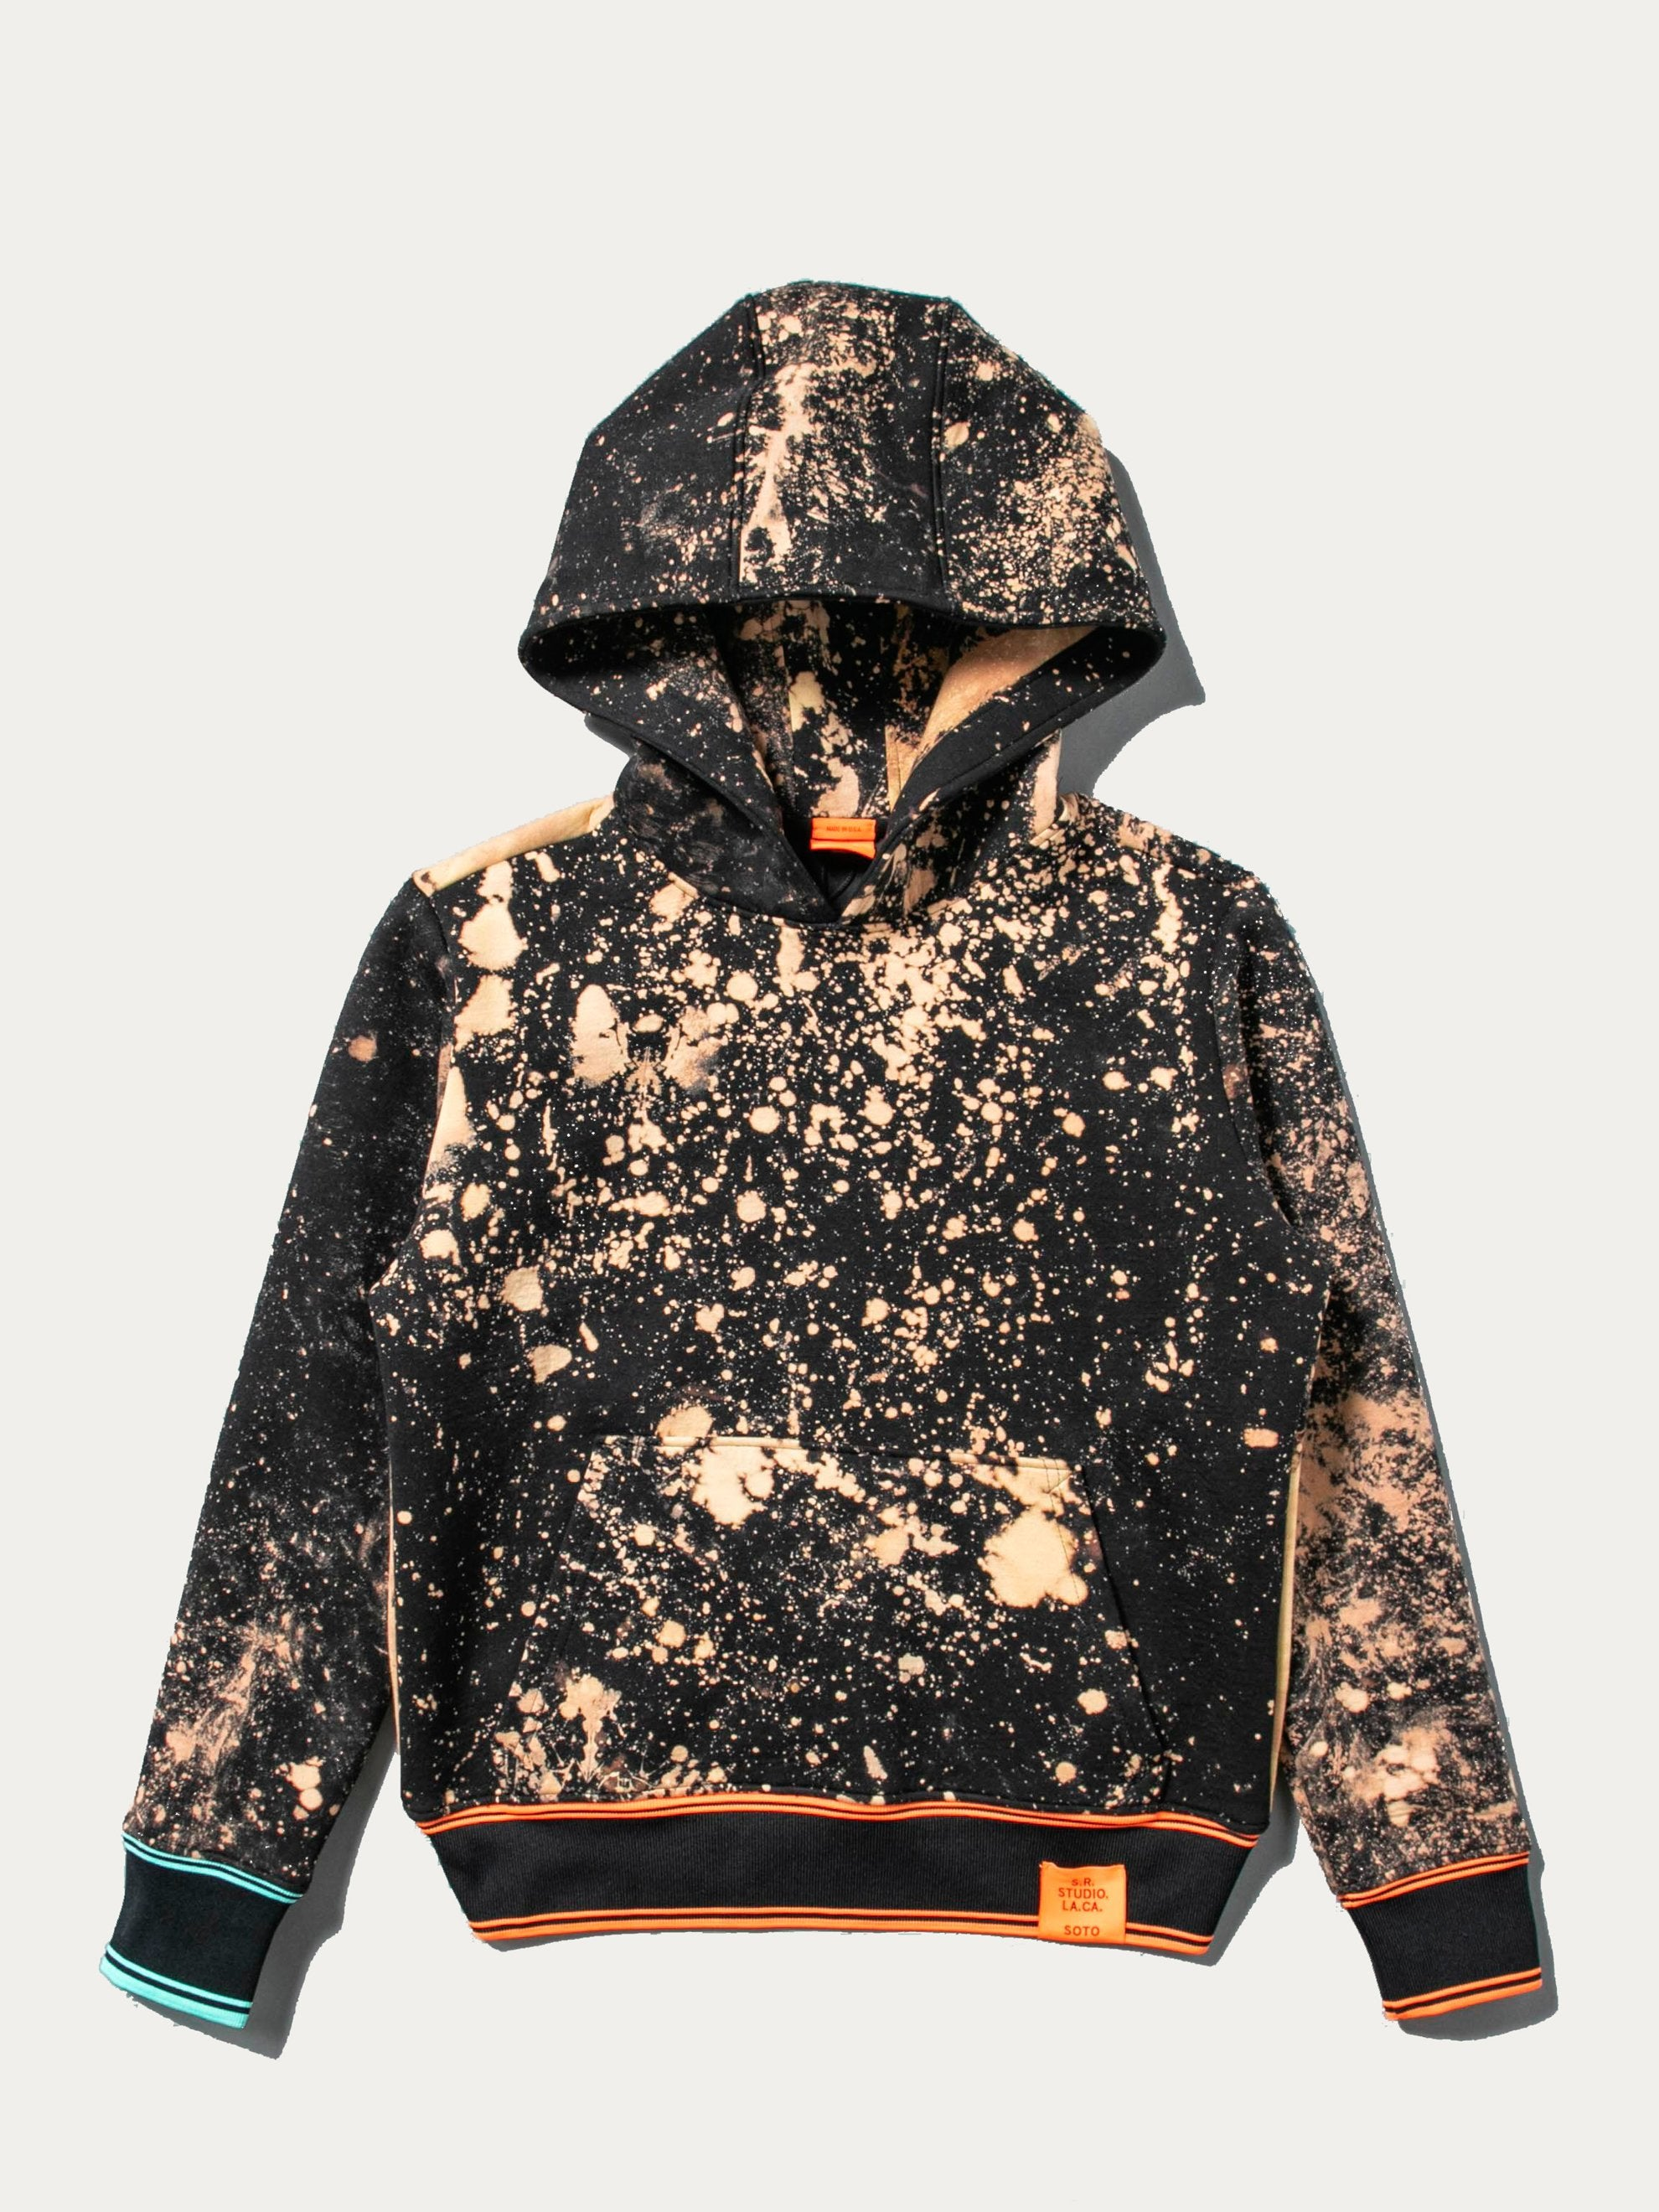 Hand-Bleached Sepia Soto Slanted Pullover Hoodie With Multi Rib